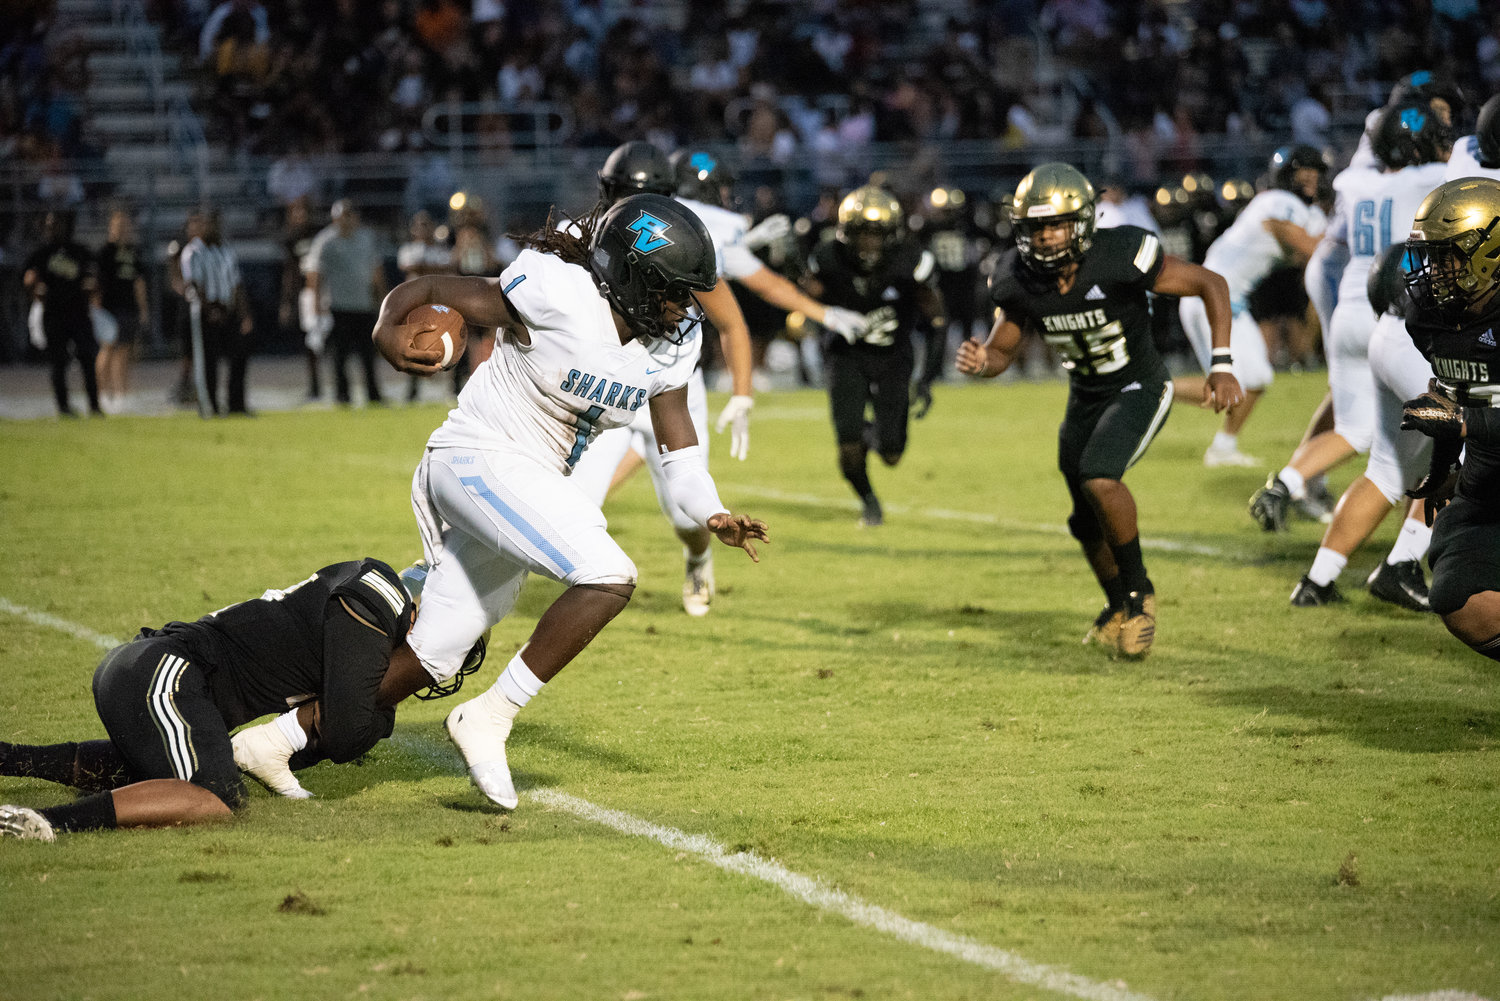 PVHS quarterback Jacobi Myers runs the ball against Oakleaf during the Kickoff Classic Aug. 16.